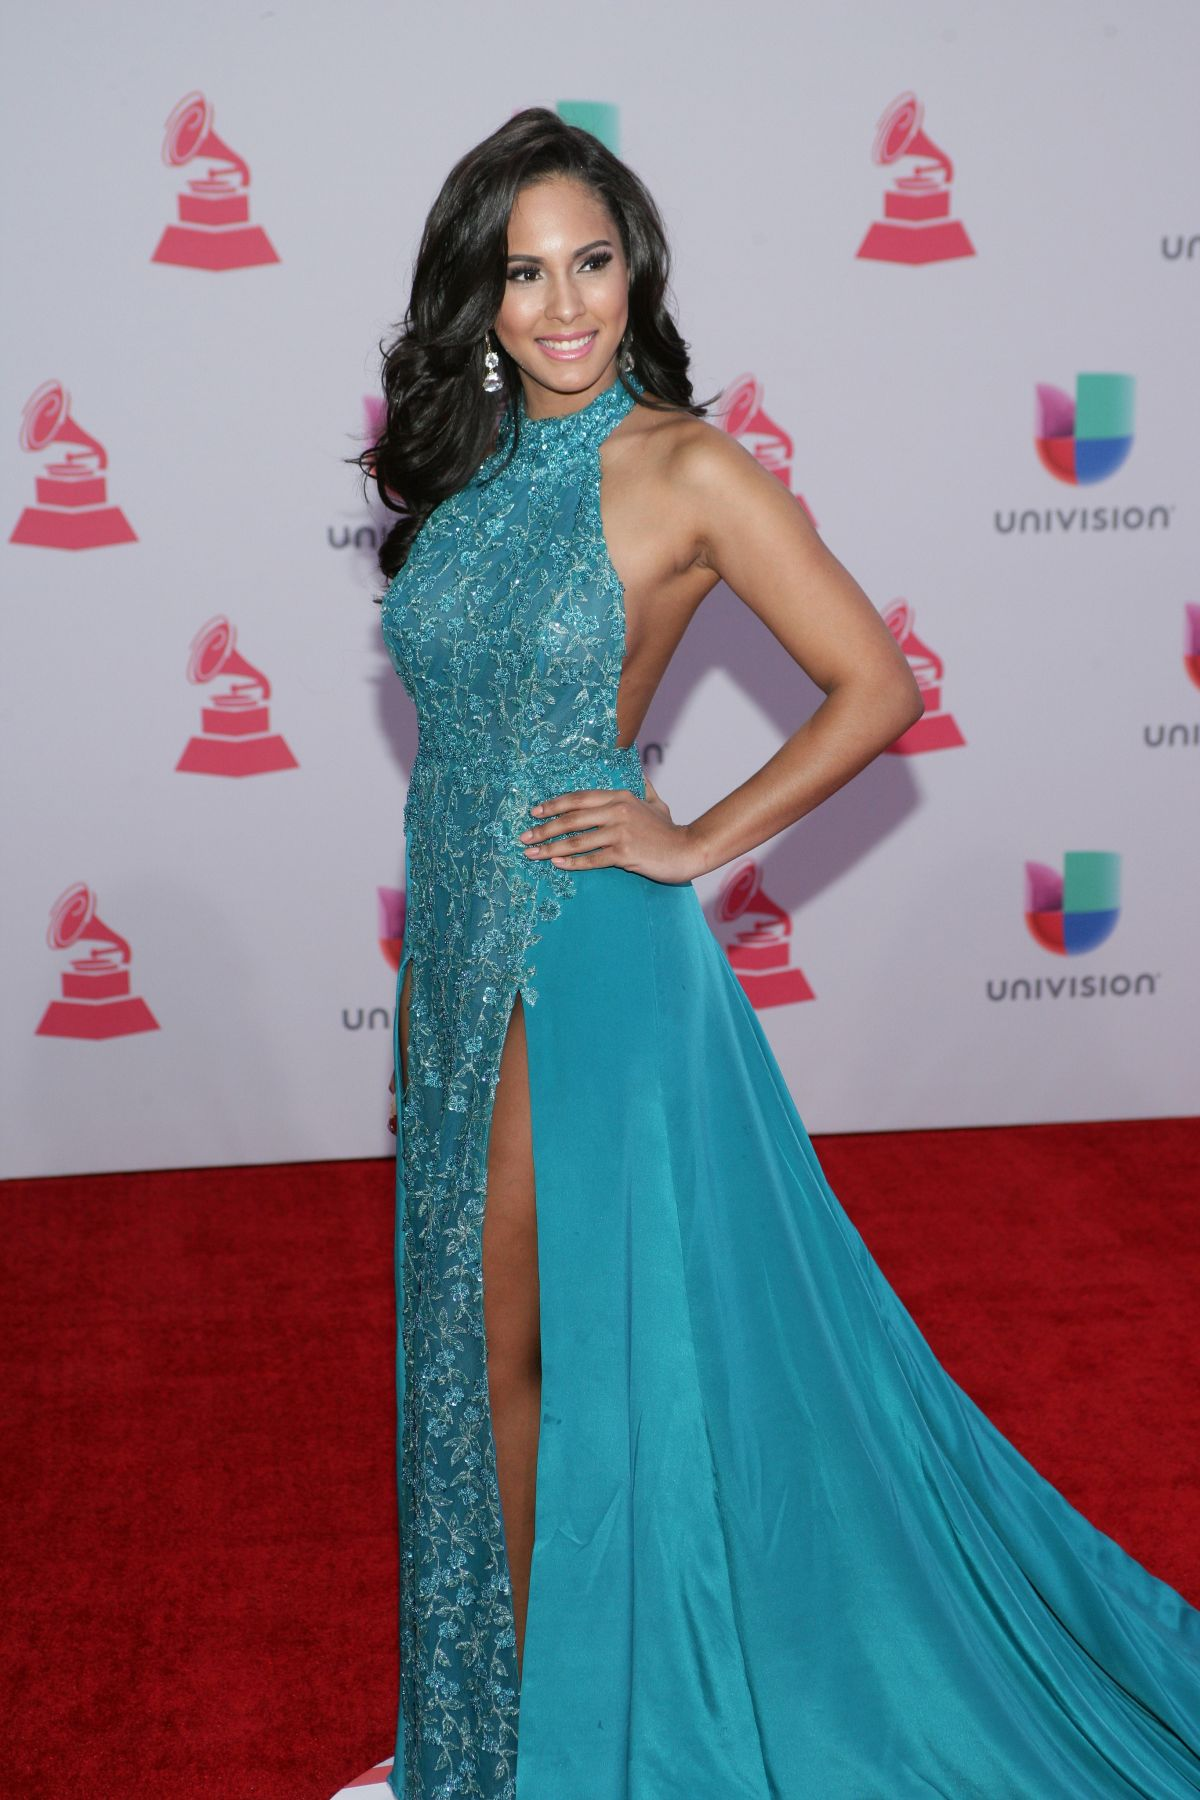 THATIANA DIAZ at 2015 Latin Grammy Awards in Las Vegas 11/18/2015